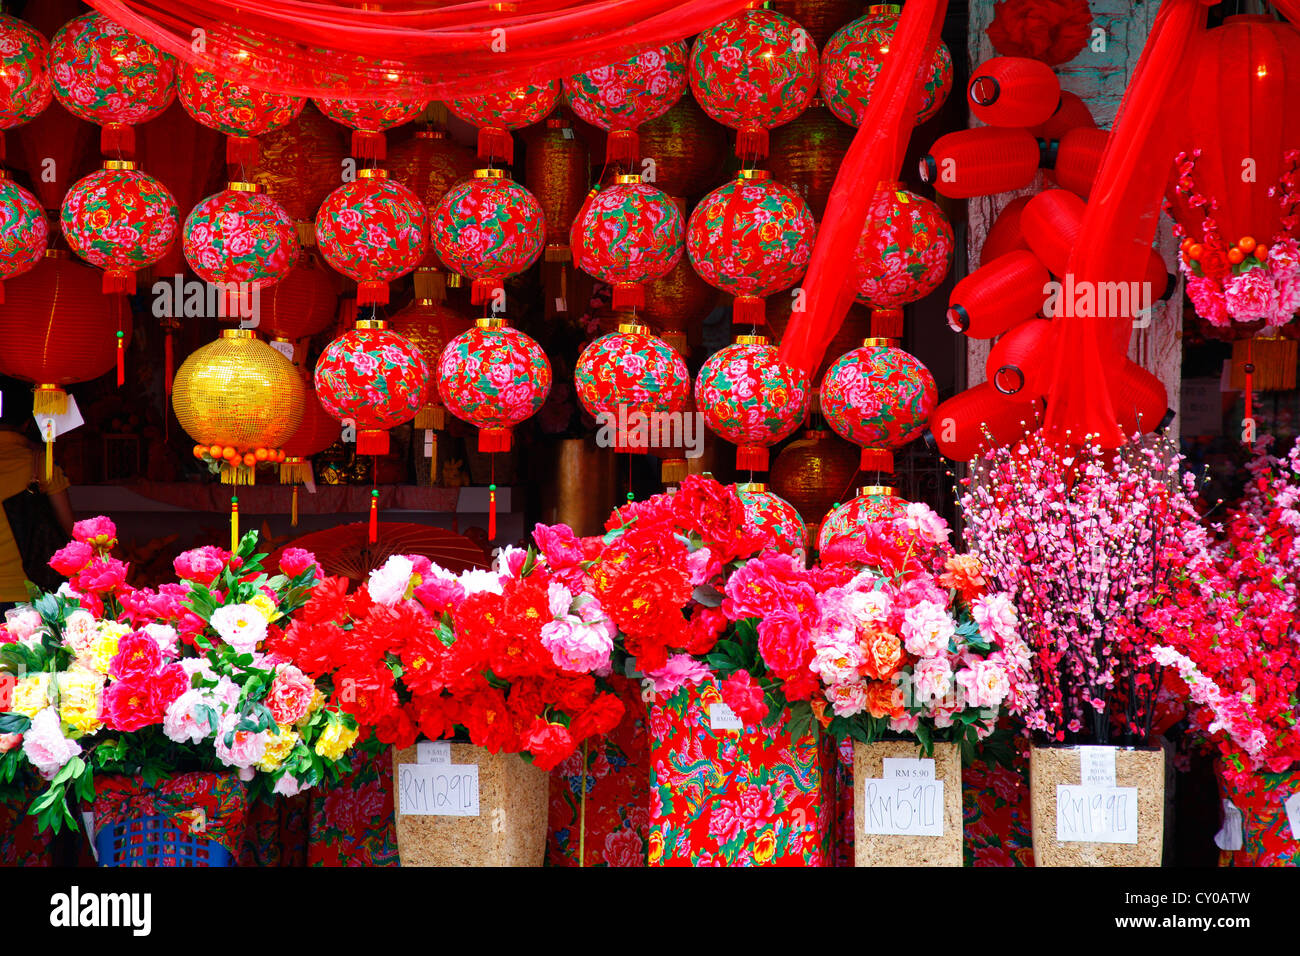 Flower and lantern stand, preparing for the Chinese New Year, Chinatown, Kuala Lumpur, Malaysia, Southeast Asia, - Stock Image